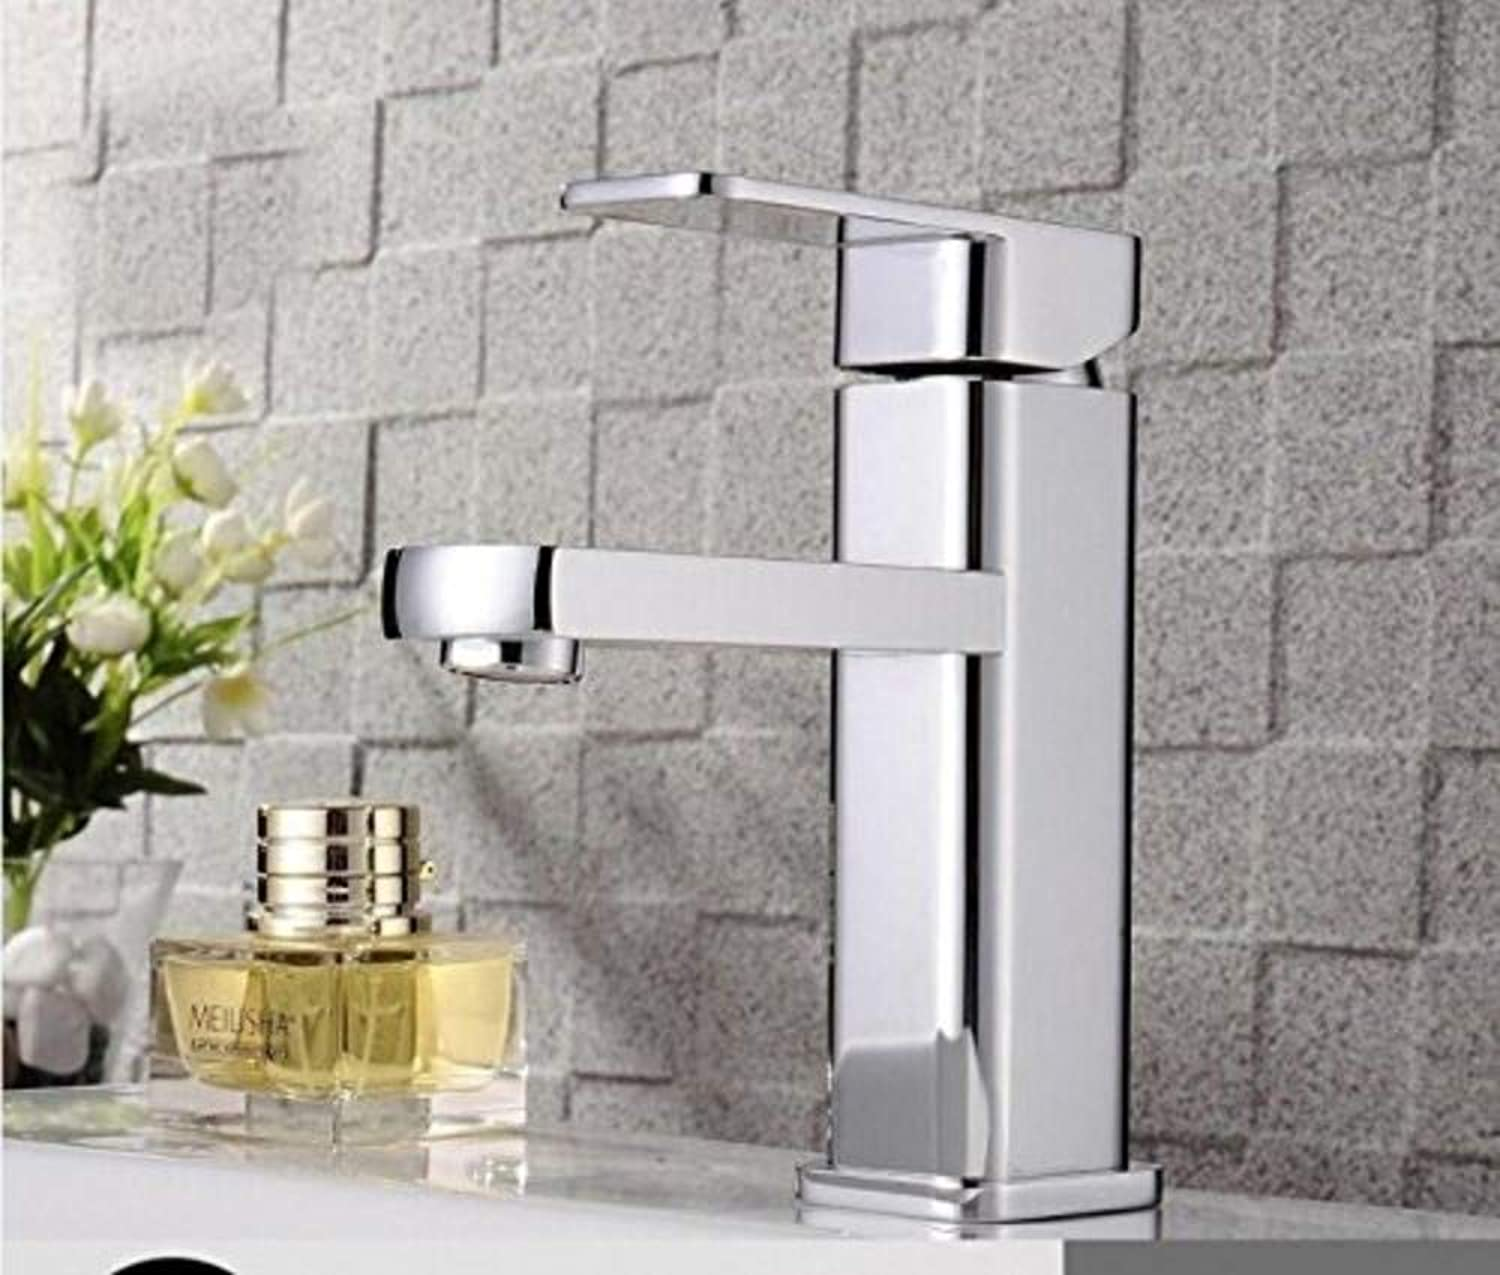 360° redating Faucet Retro Faucetall Copper Hot and Cold Water High Quality Faucet